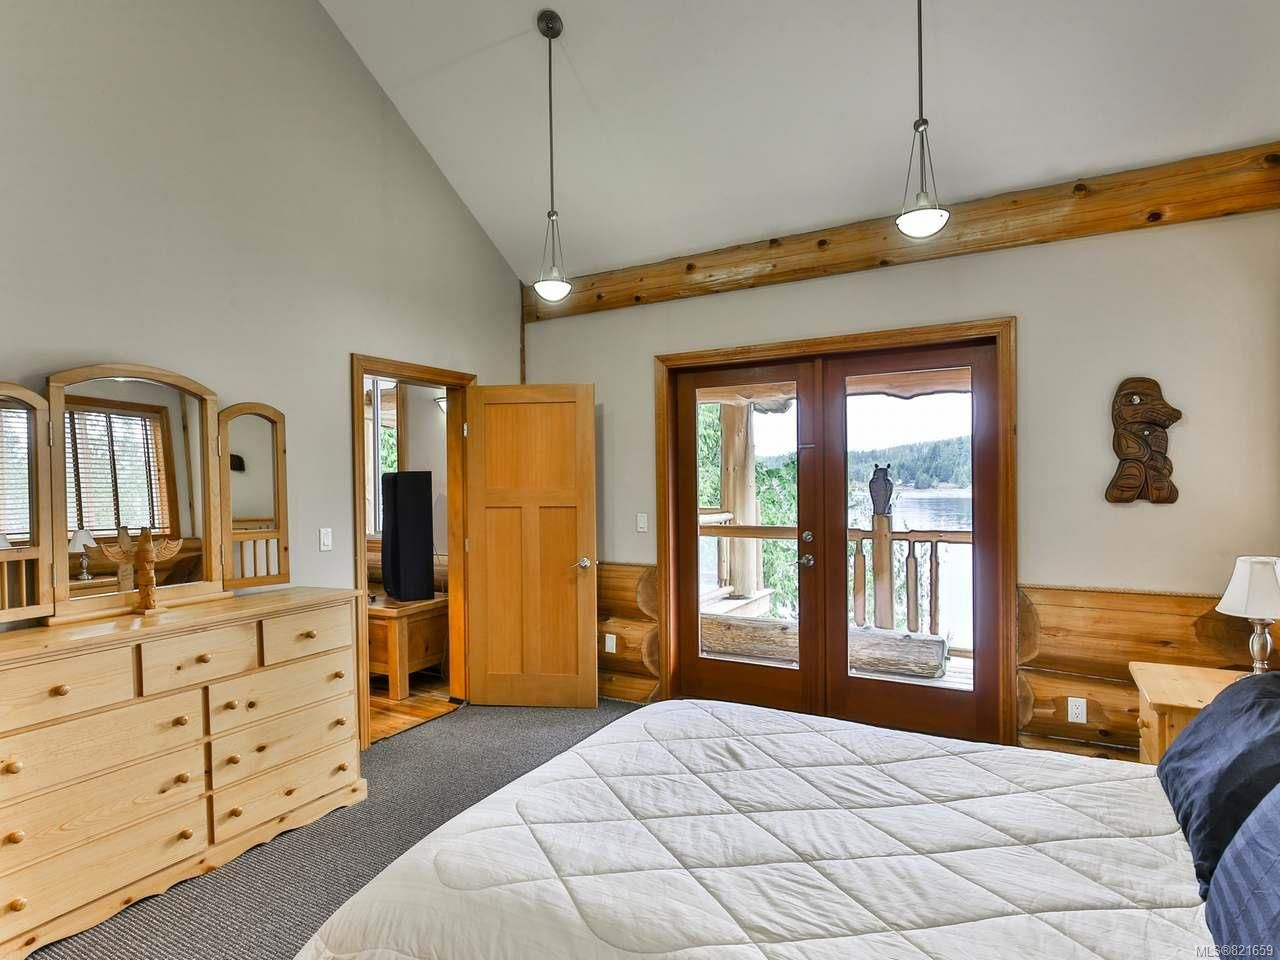 Photo 22: Photos: 1049 Helen Rd in UCLUELET: PA Ucluelet House for sale (Port Alberni)  : MLS®# 821659